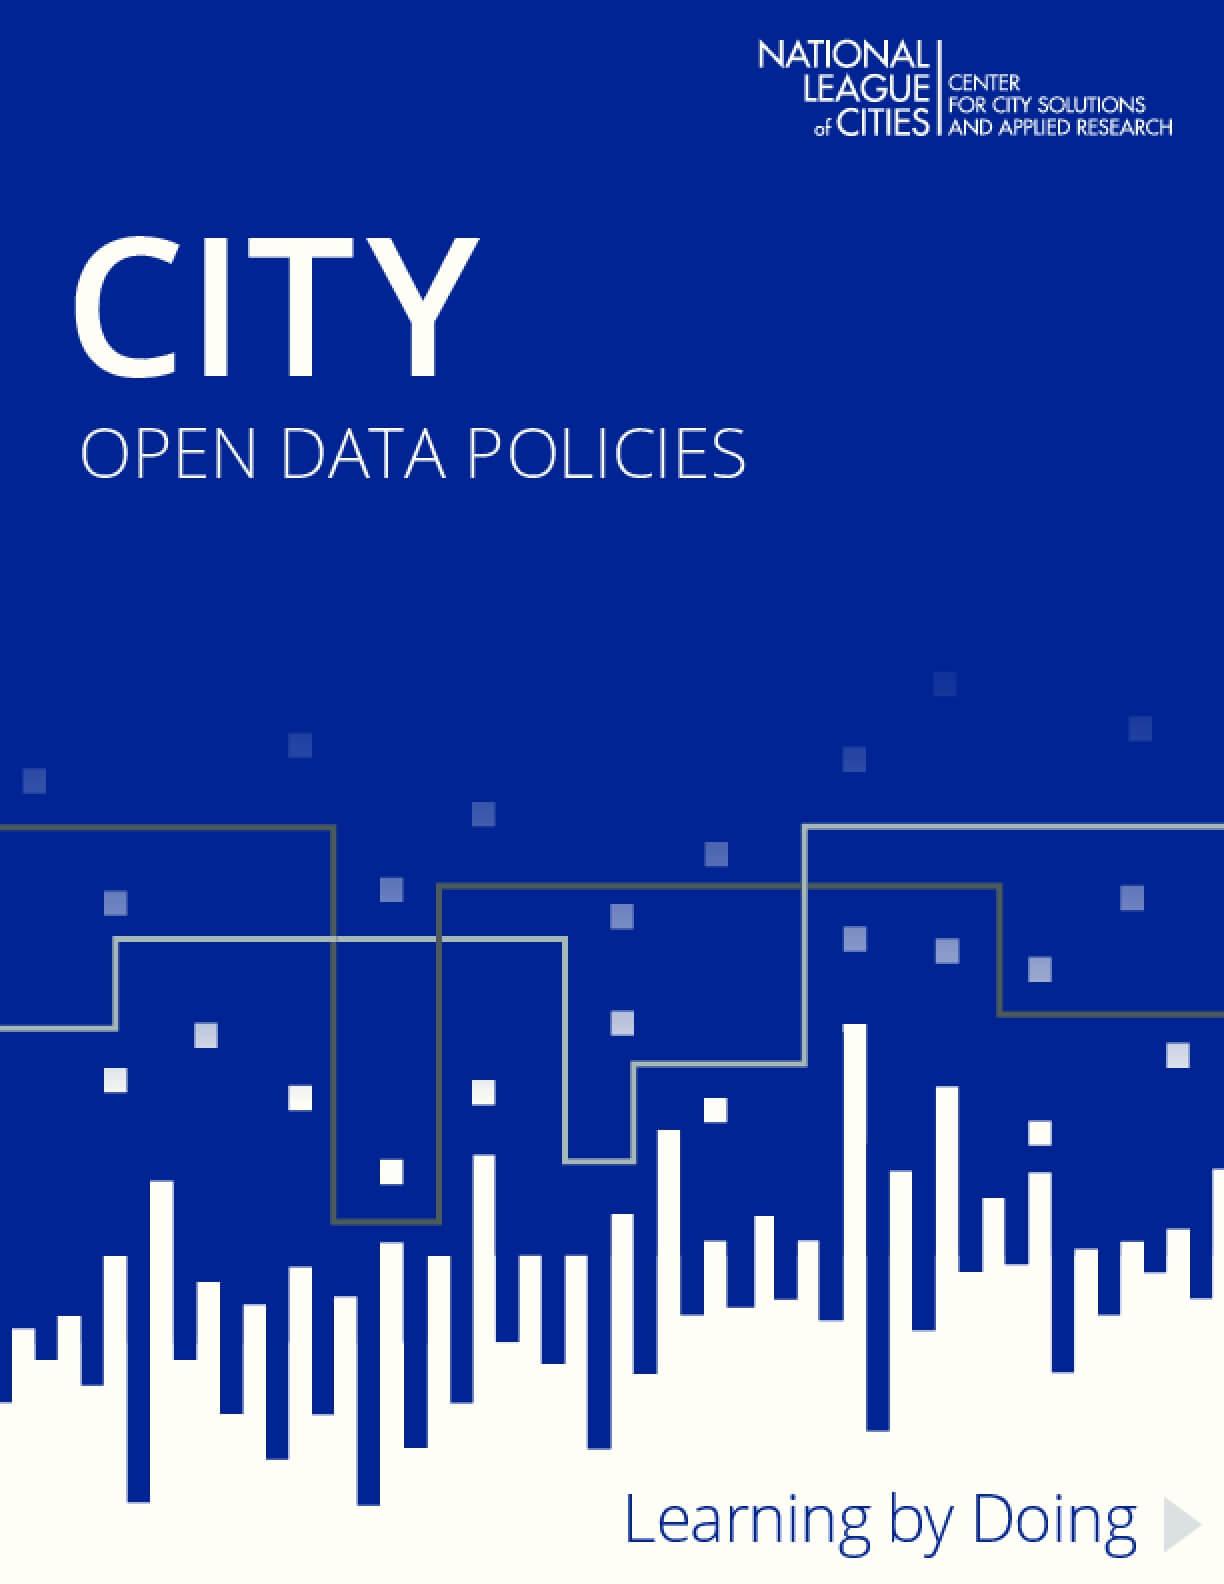 City Open Data Policies